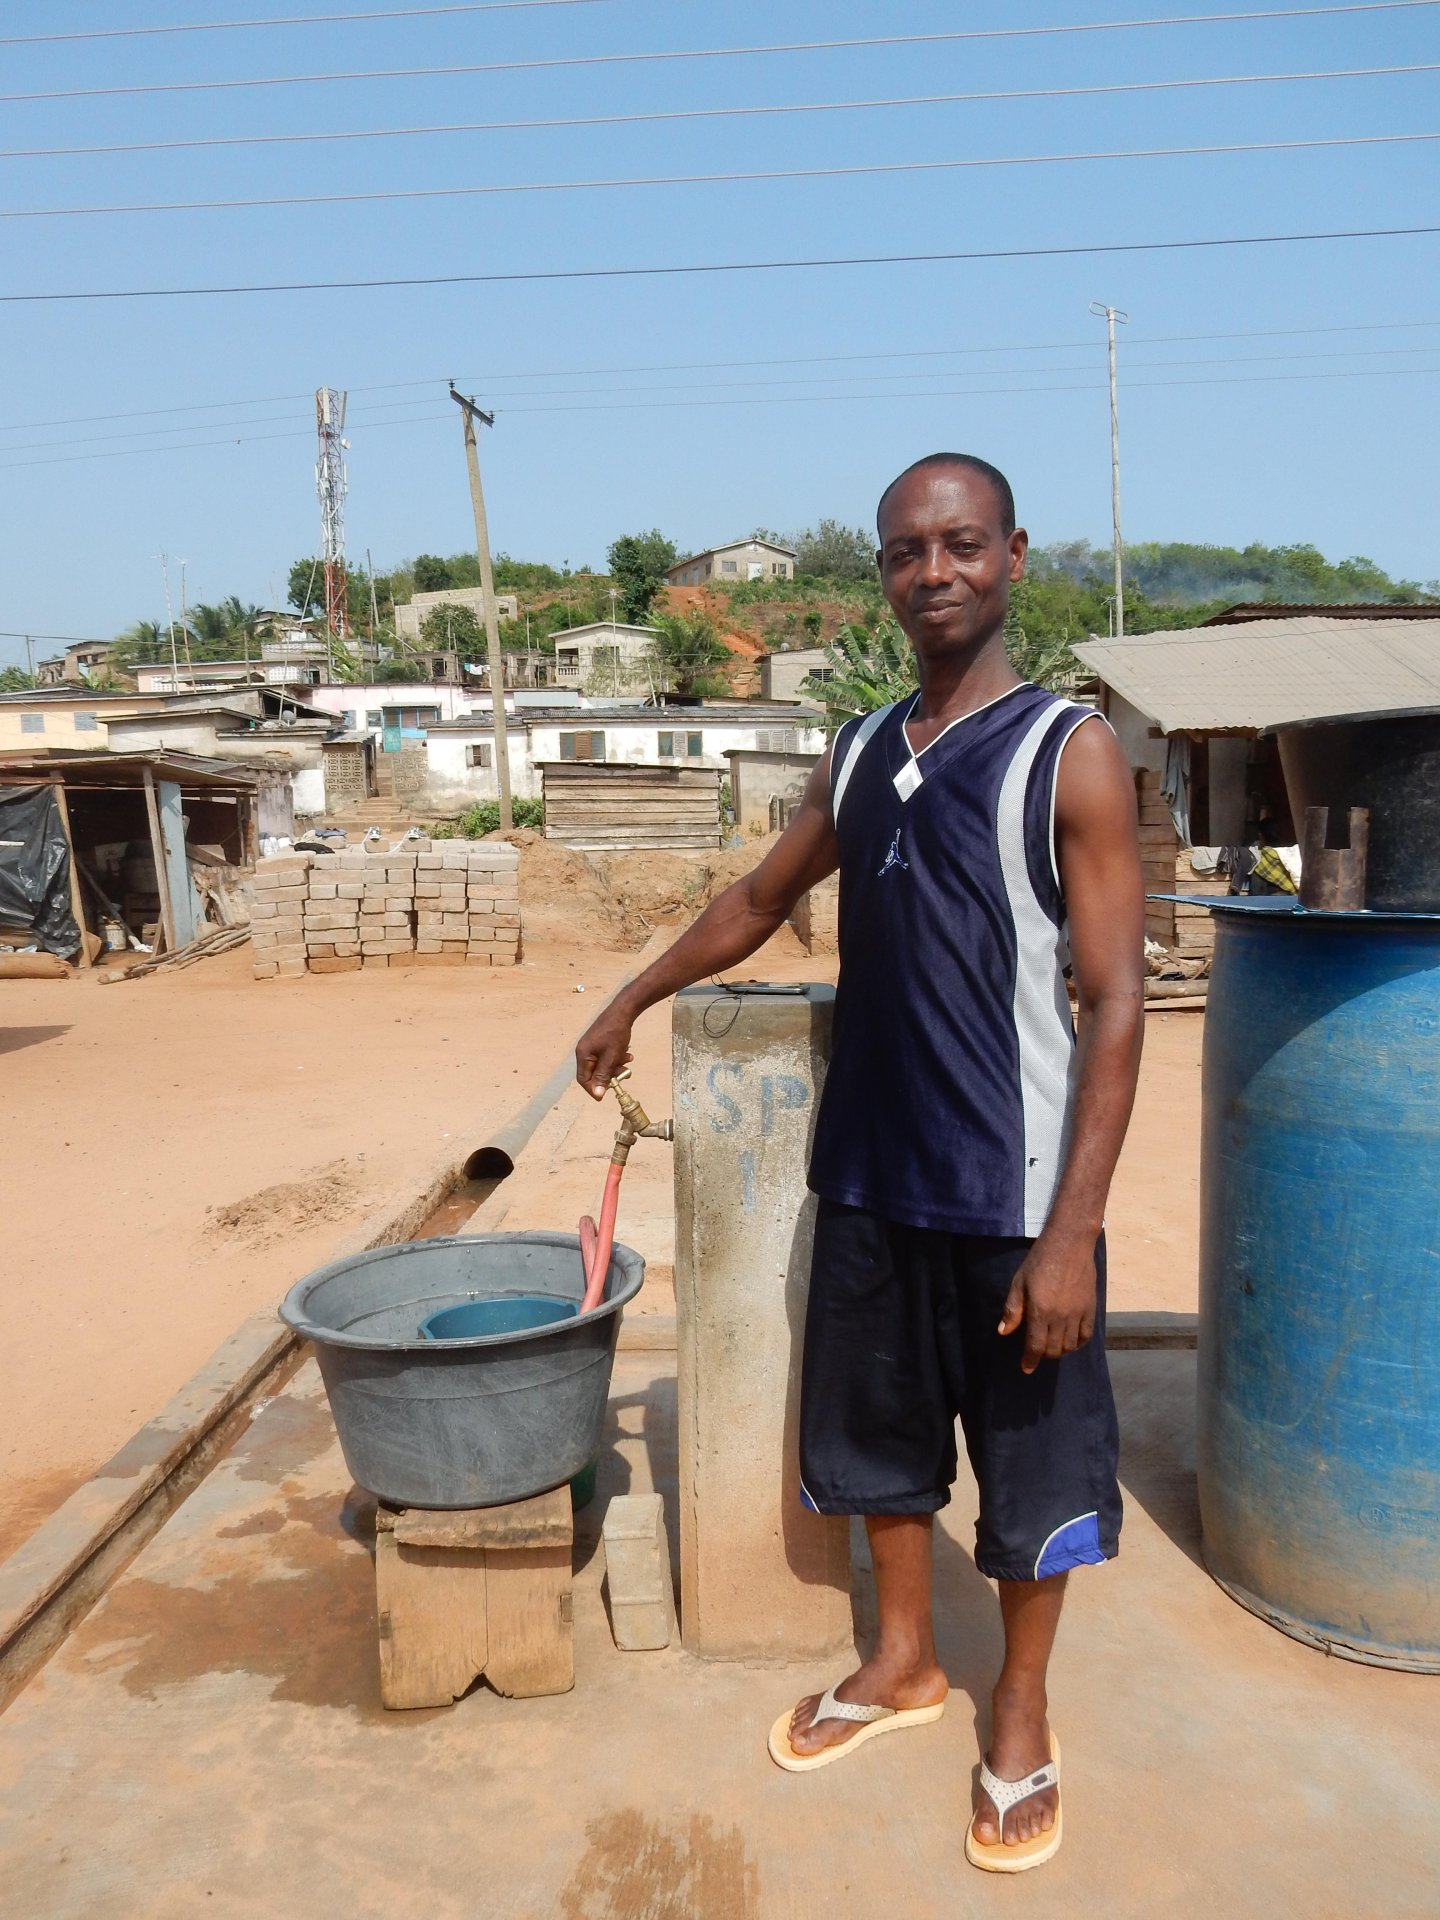 https://www.waterforlife.nl/files/visuals/_1920x1920_fit_center-center_85_none/Waterverkoper-Ghana.JPG